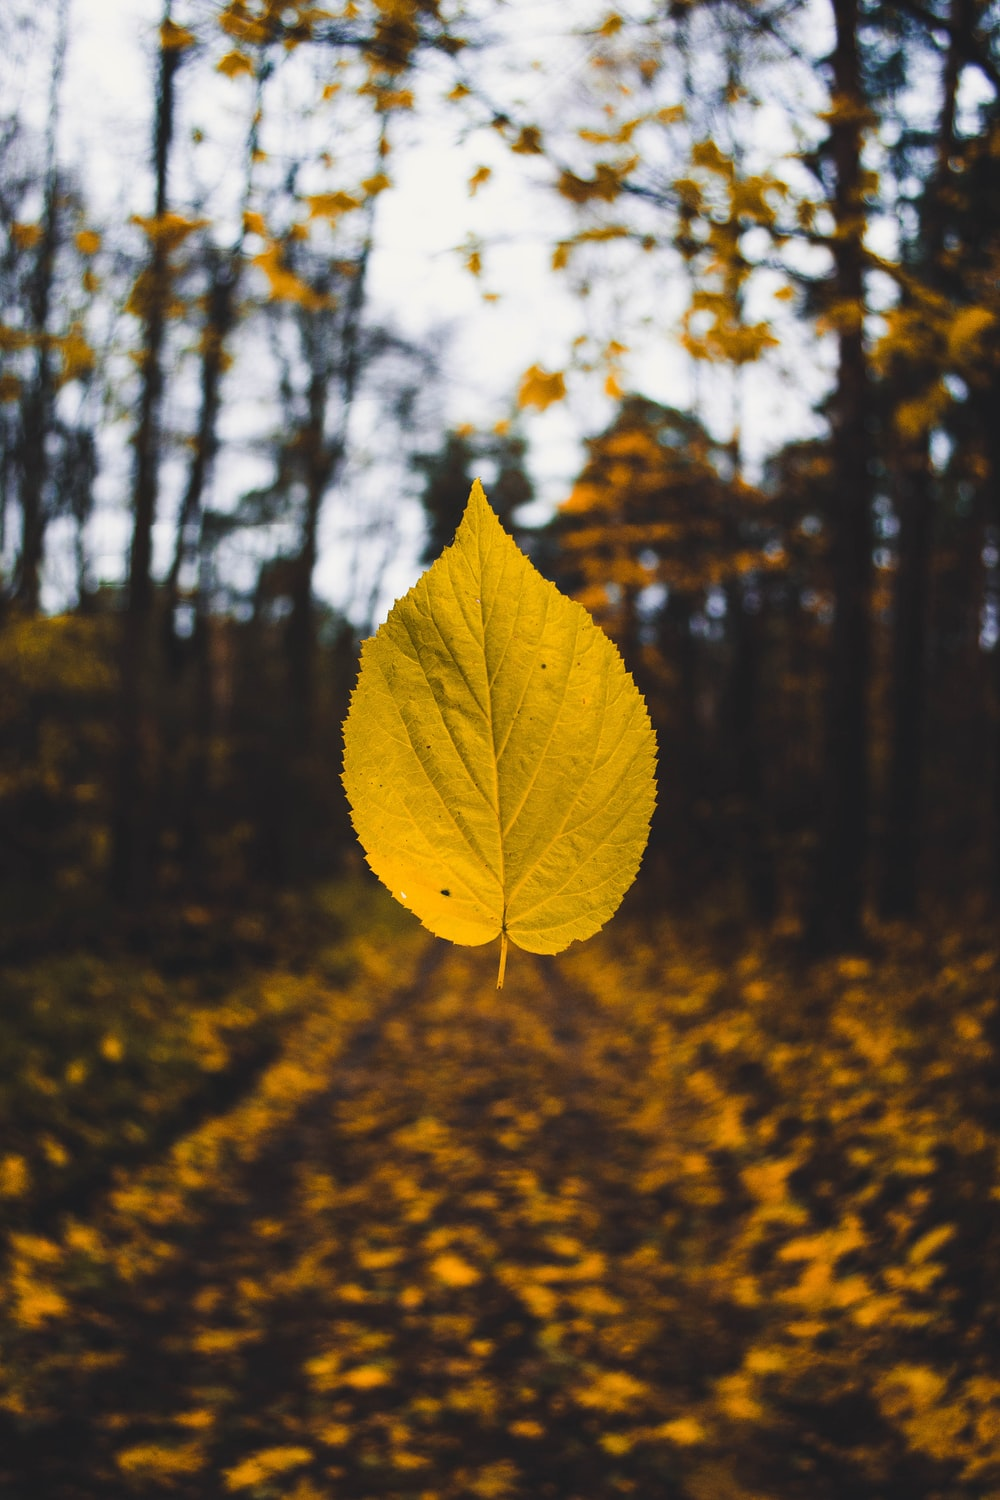 A yellow autumn leaf suspended in the air over the forest floor